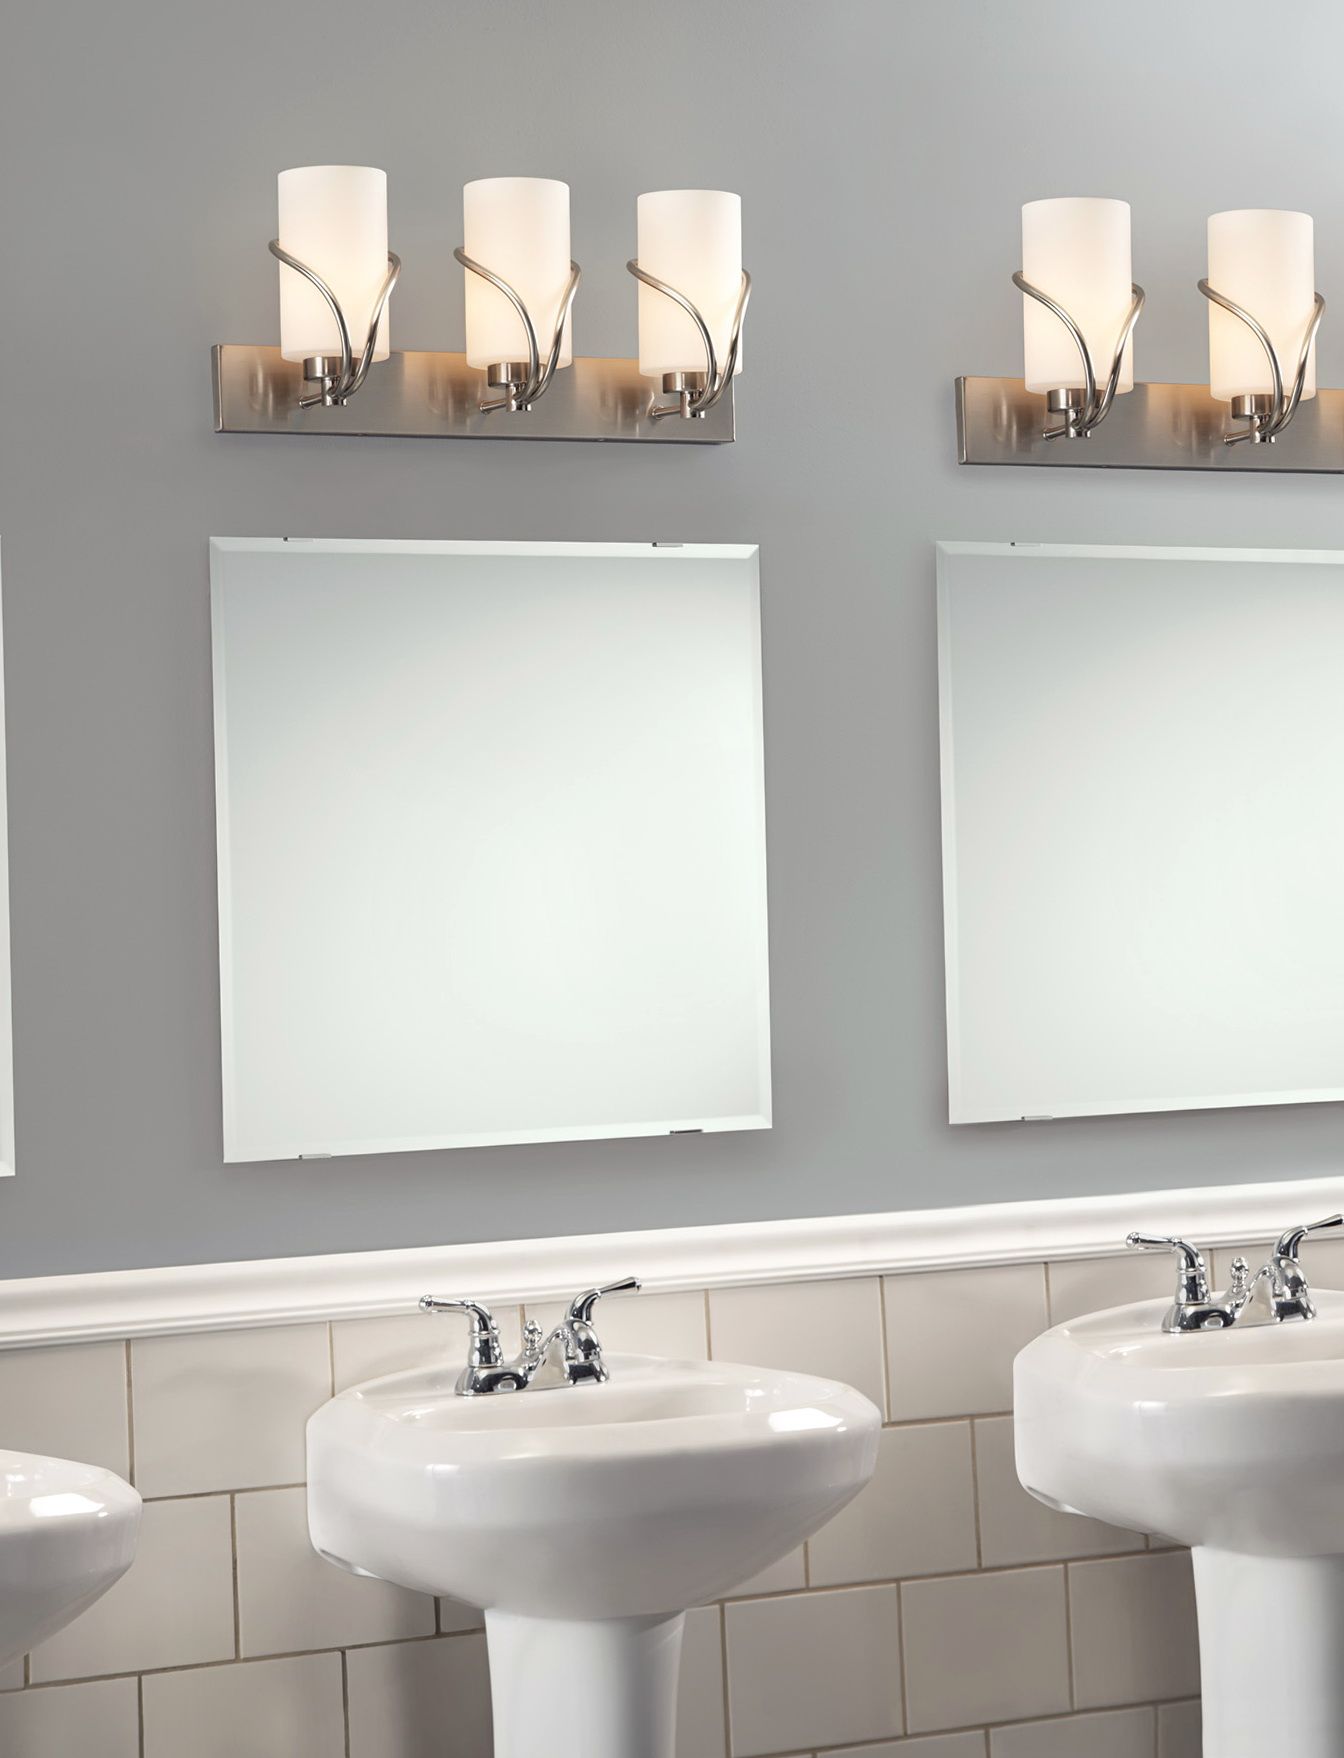 Bathroom Vanity Lighting Pictures